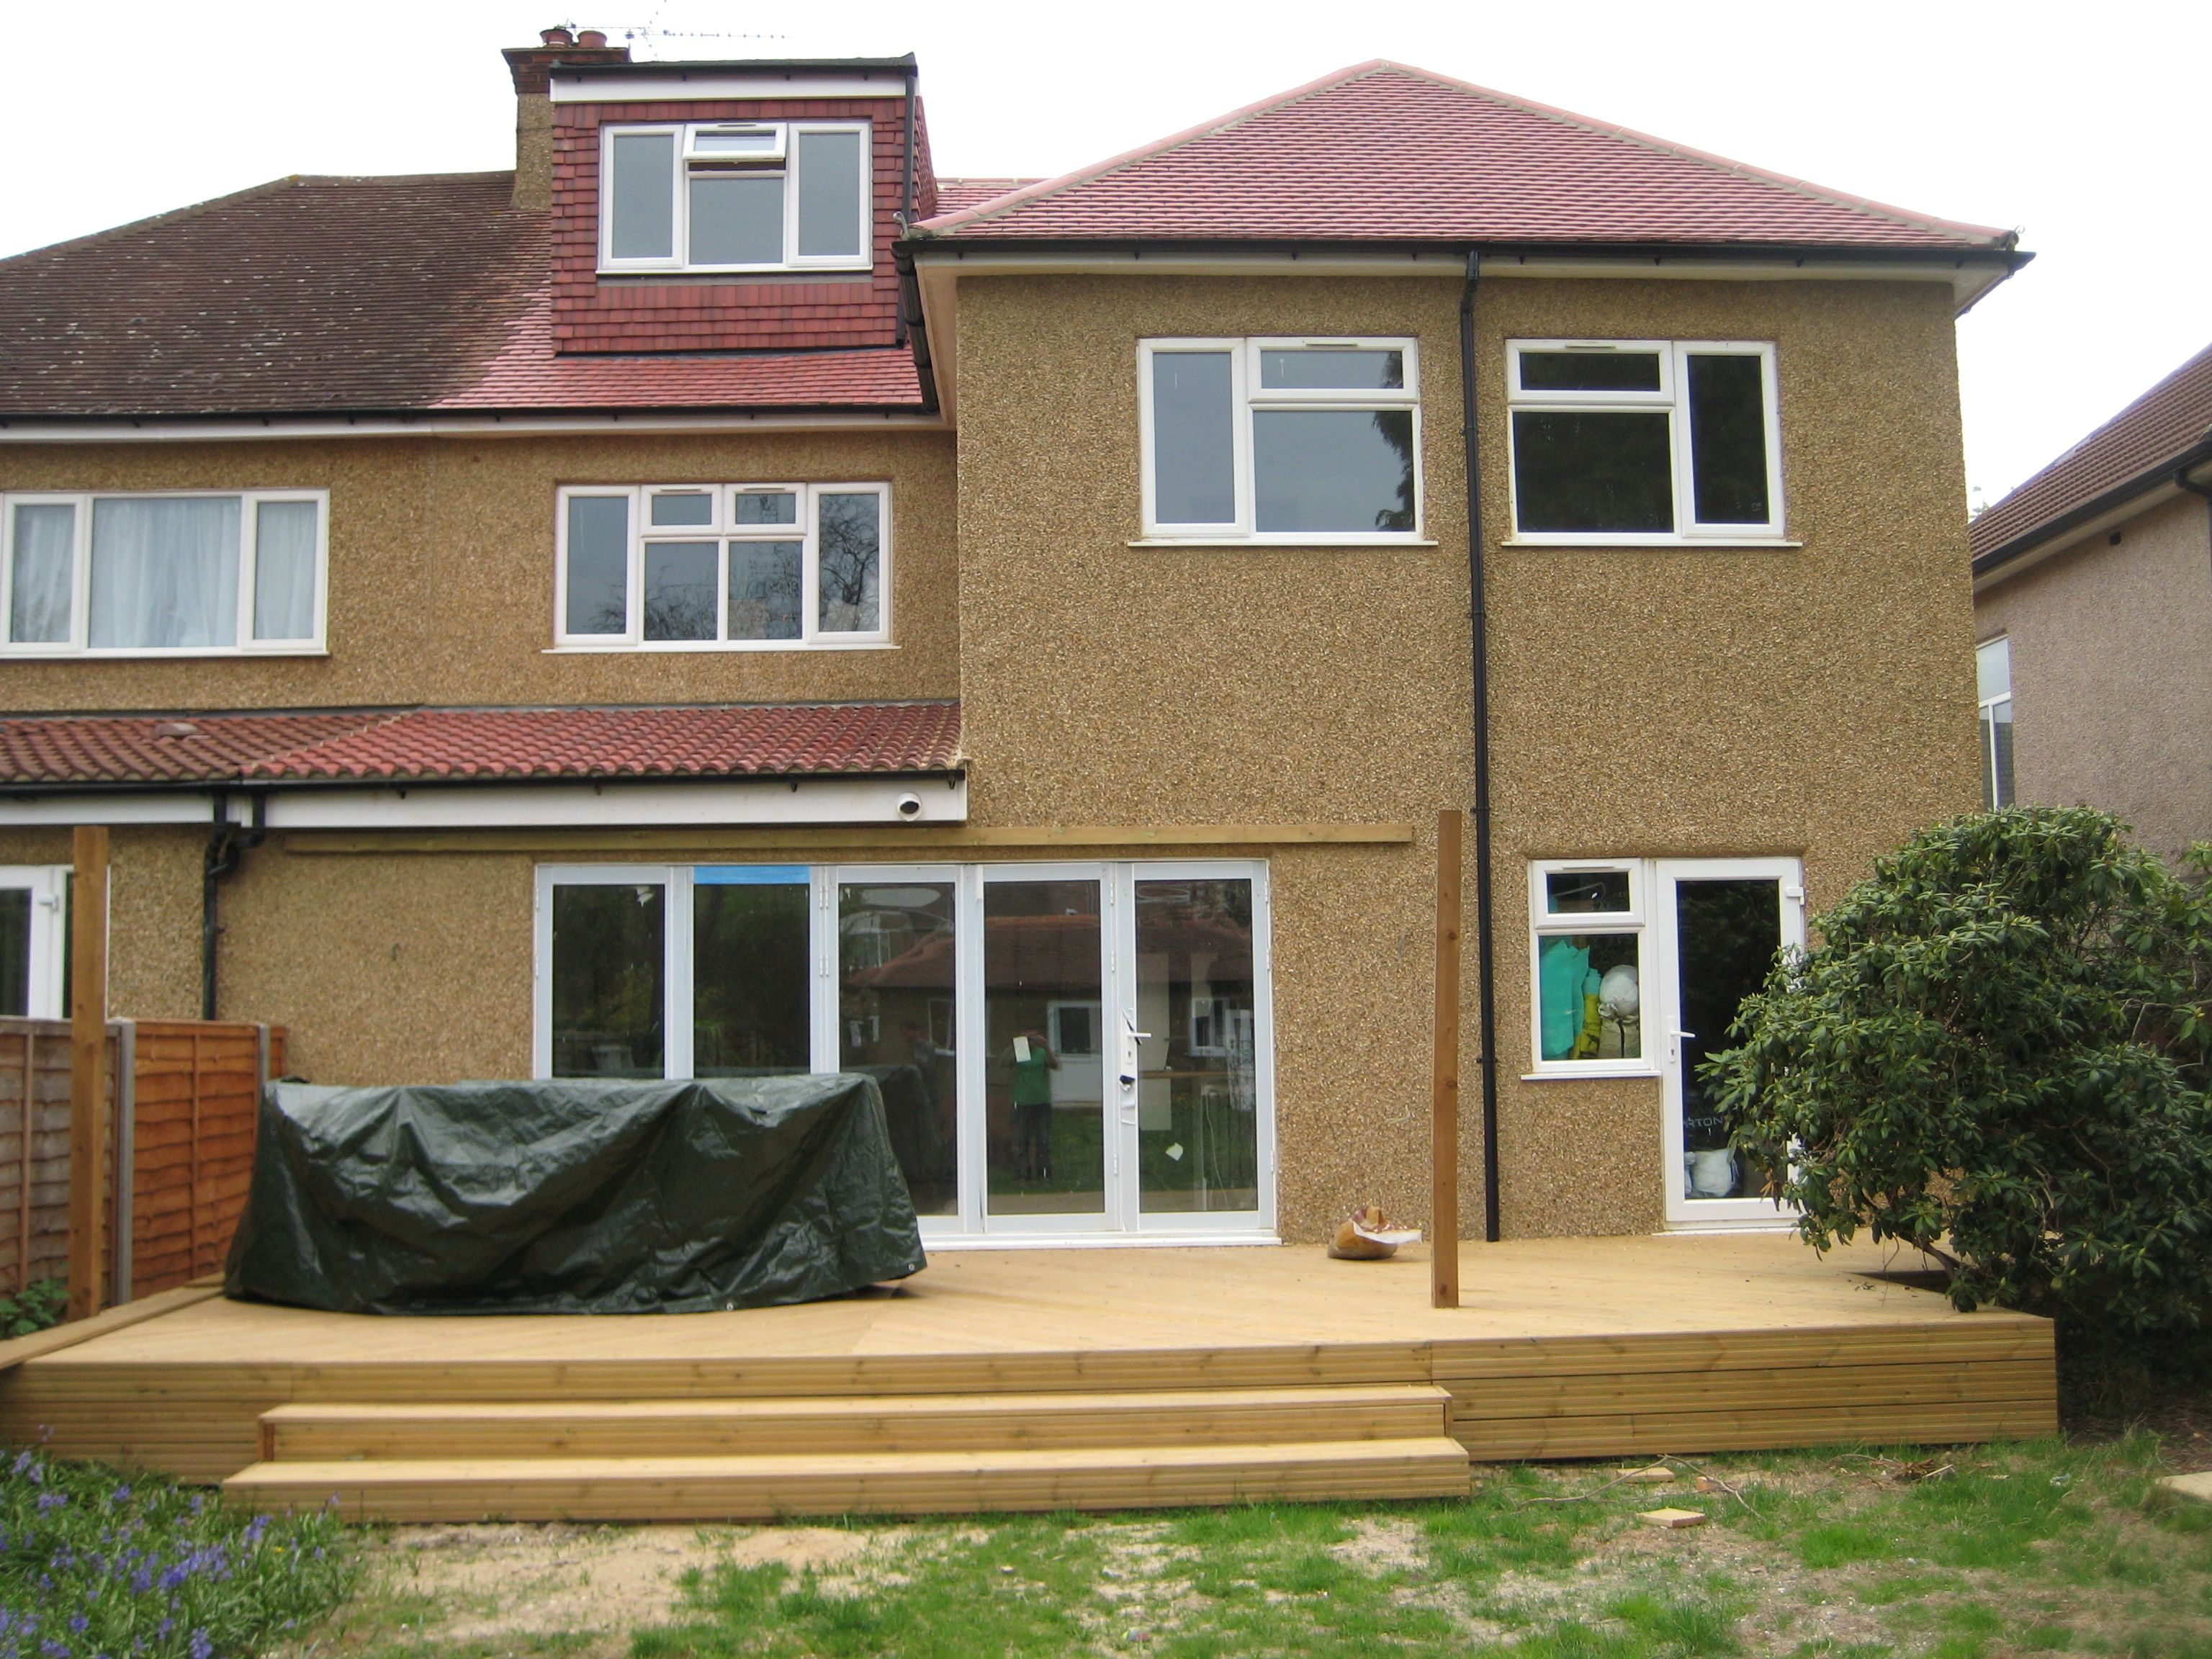 Double Storey Rear Extension Exterior house remodel